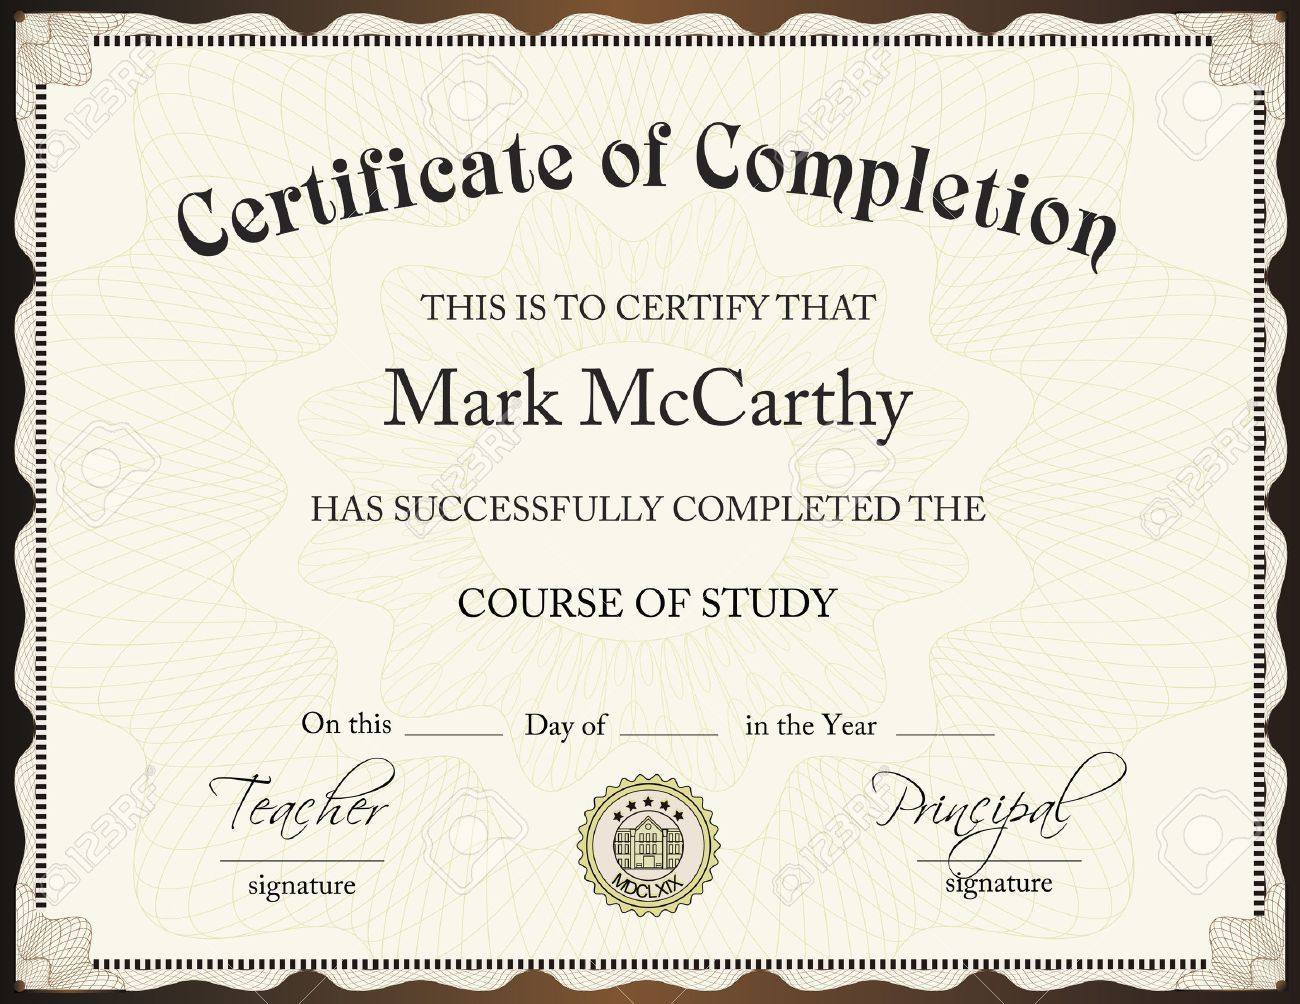 001 Excellent Certificate Of Completion Template Free Sample  Training Download WordFull